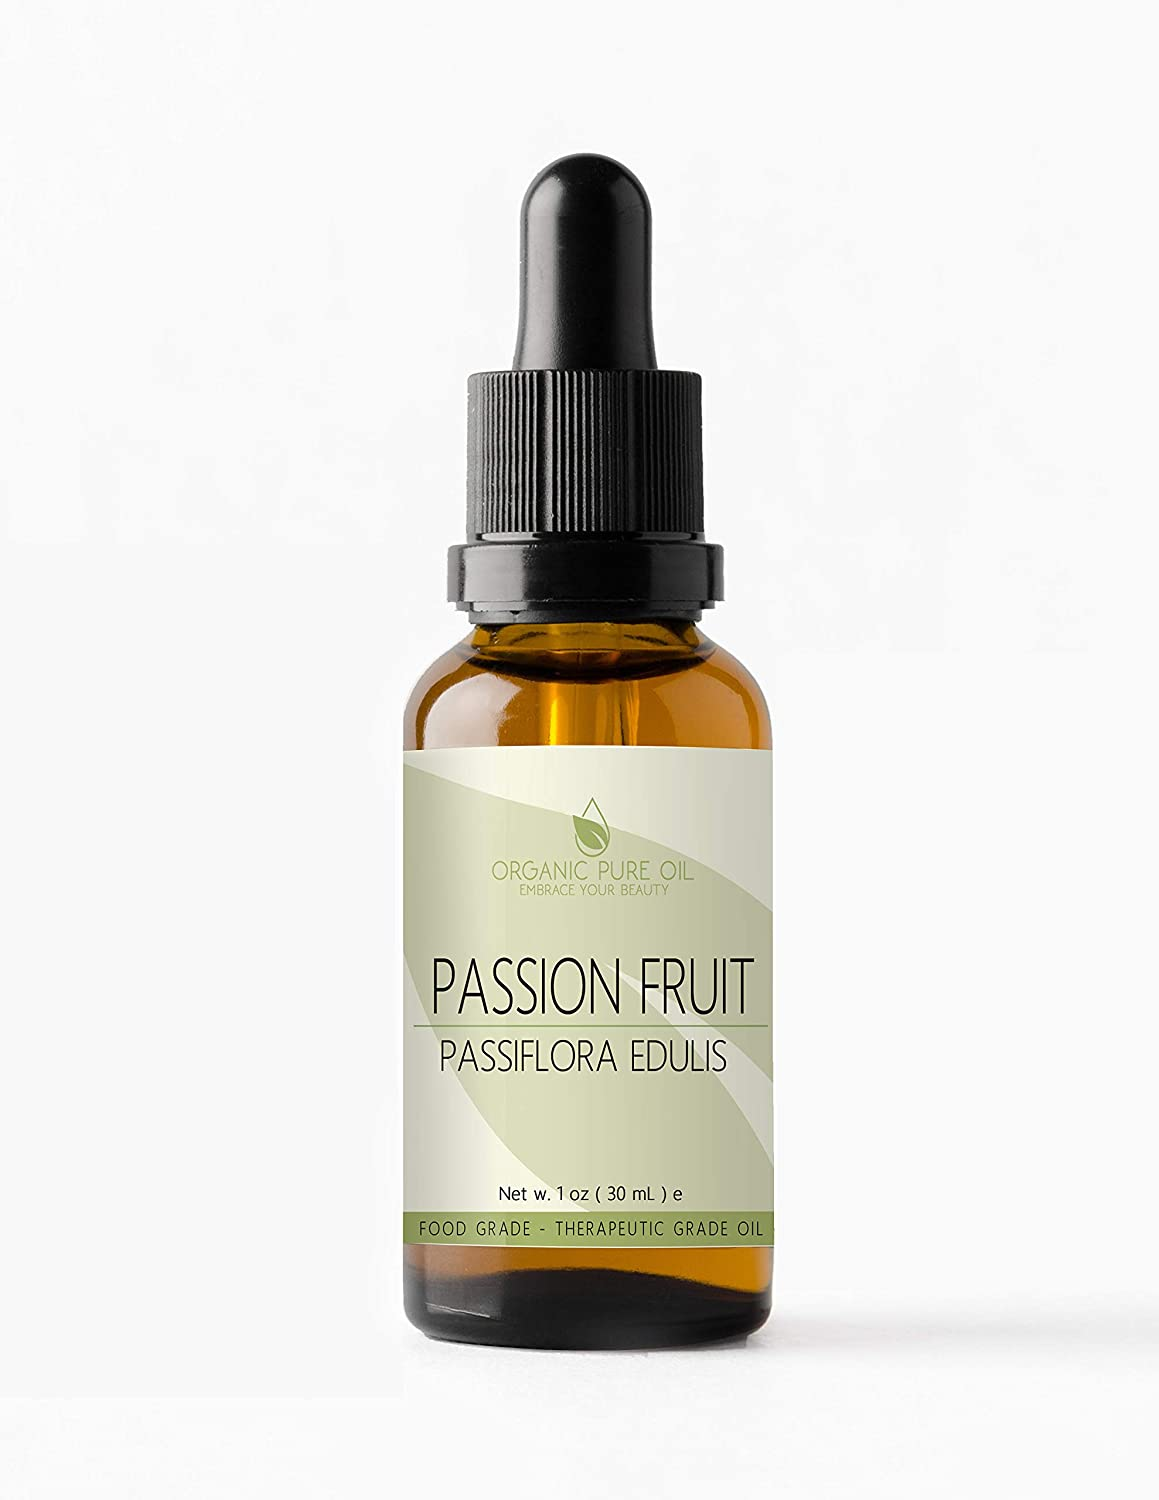 Passion Fruit Oil 1 oz 100% Pure Natural Cold Pressed Maracuja Oil Fruit Seed Unrefined Extra Virgin Premium Pharmaceutical Grade Partially Filtered for Hair Face Body Skin By Organic Pure Oil